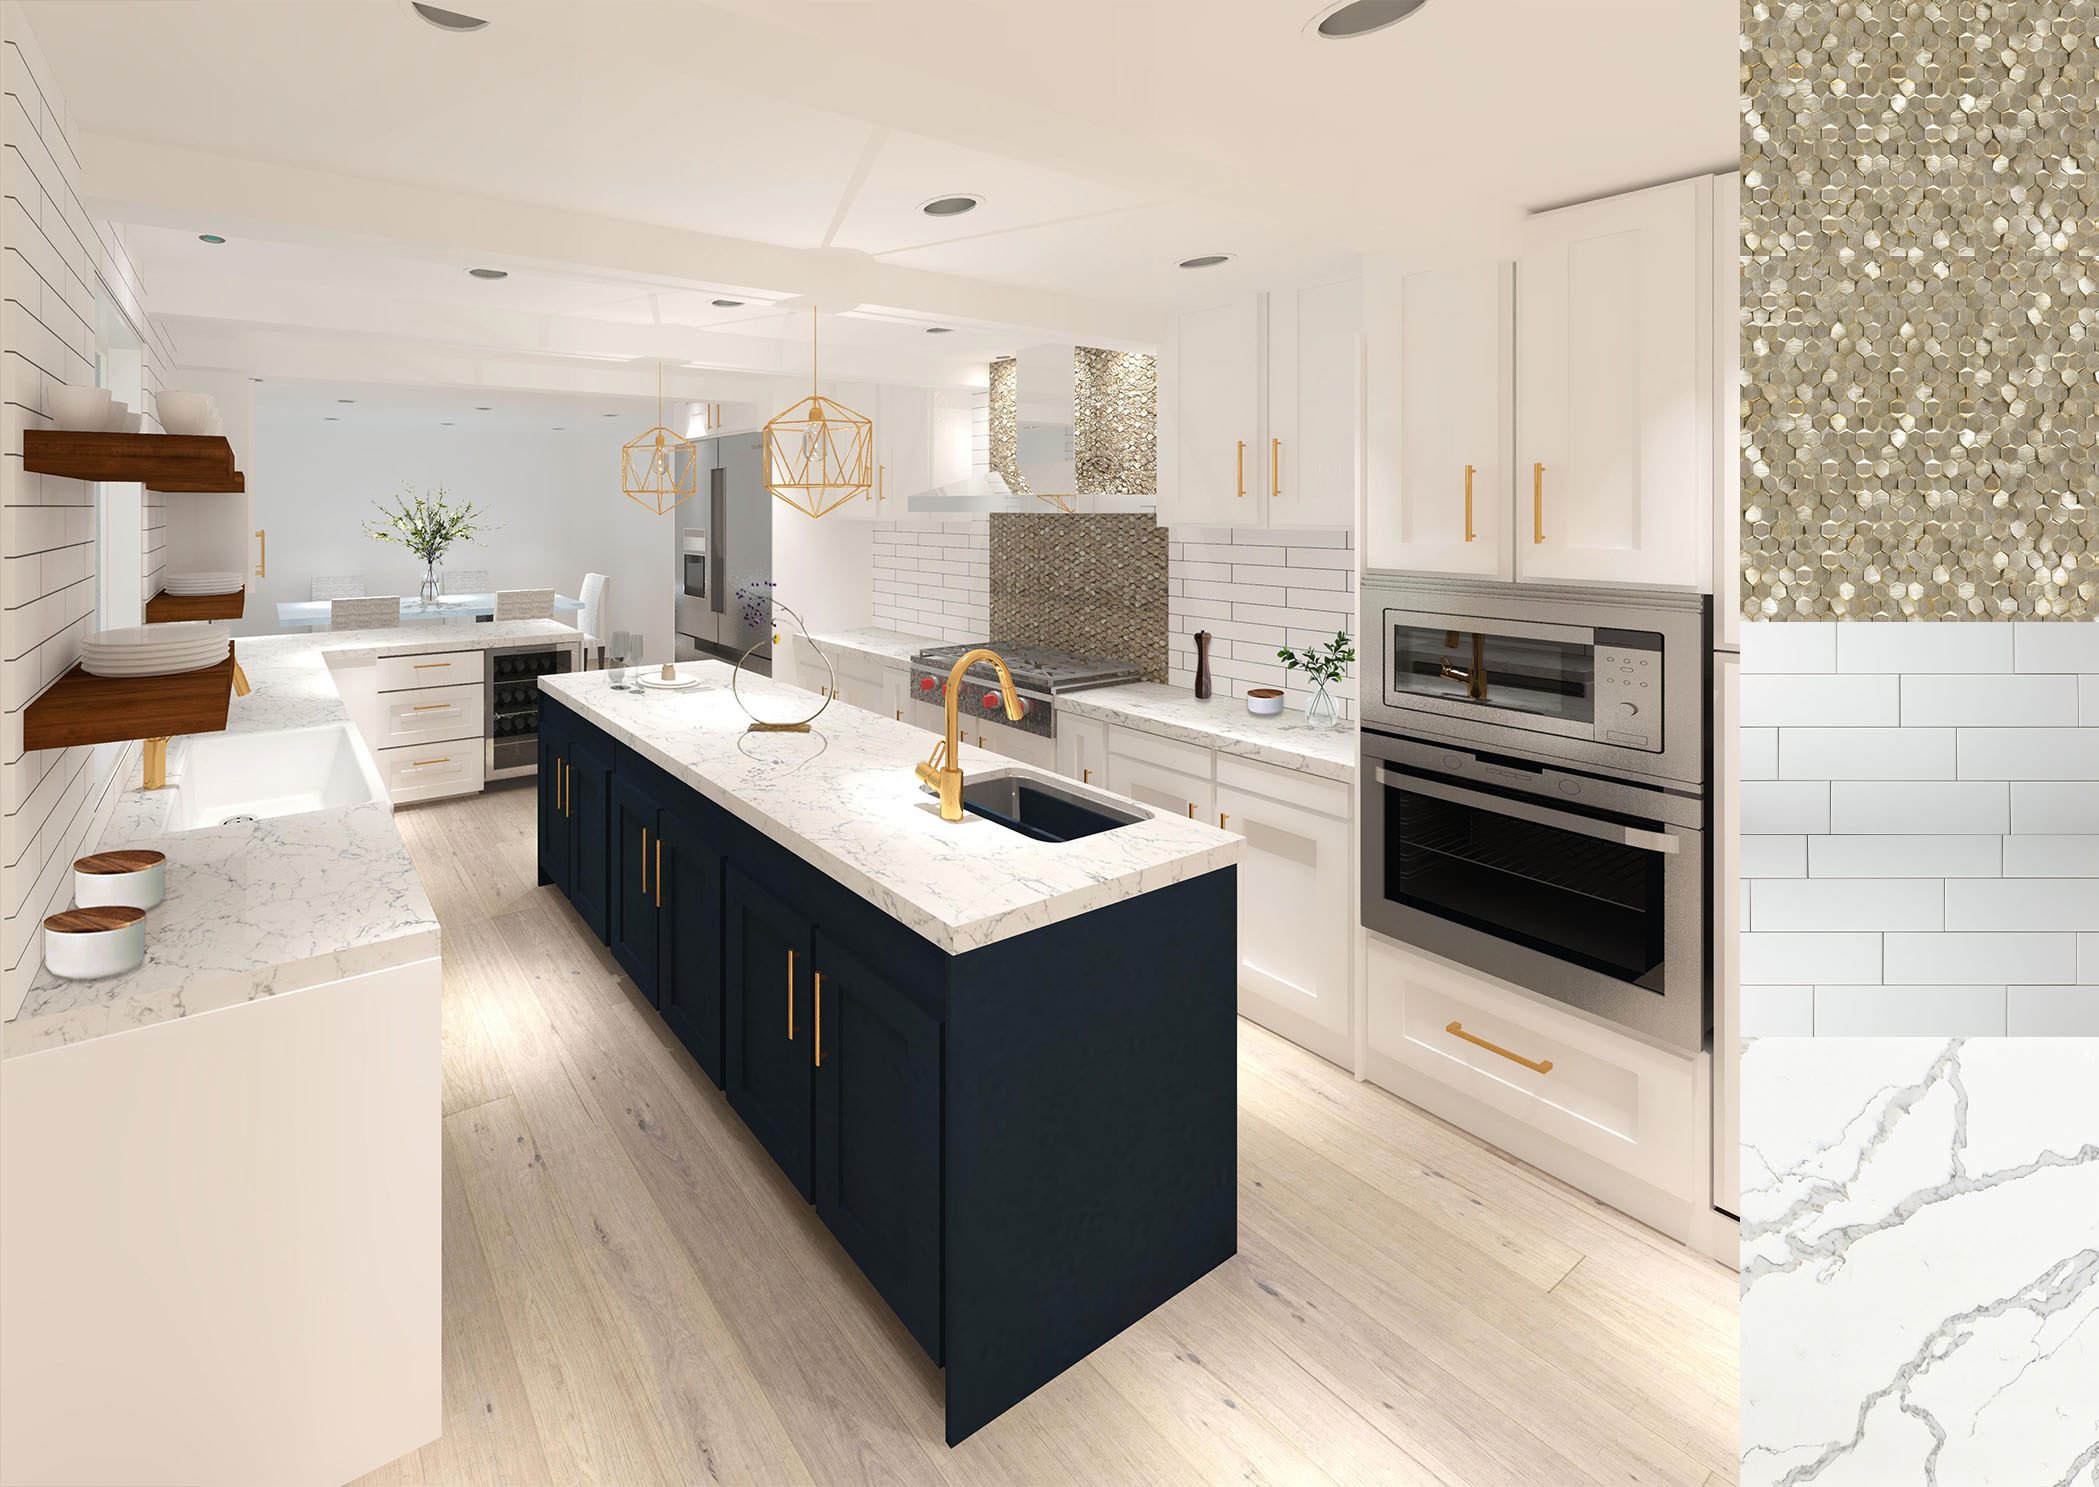 new kitchen rendering.jpg